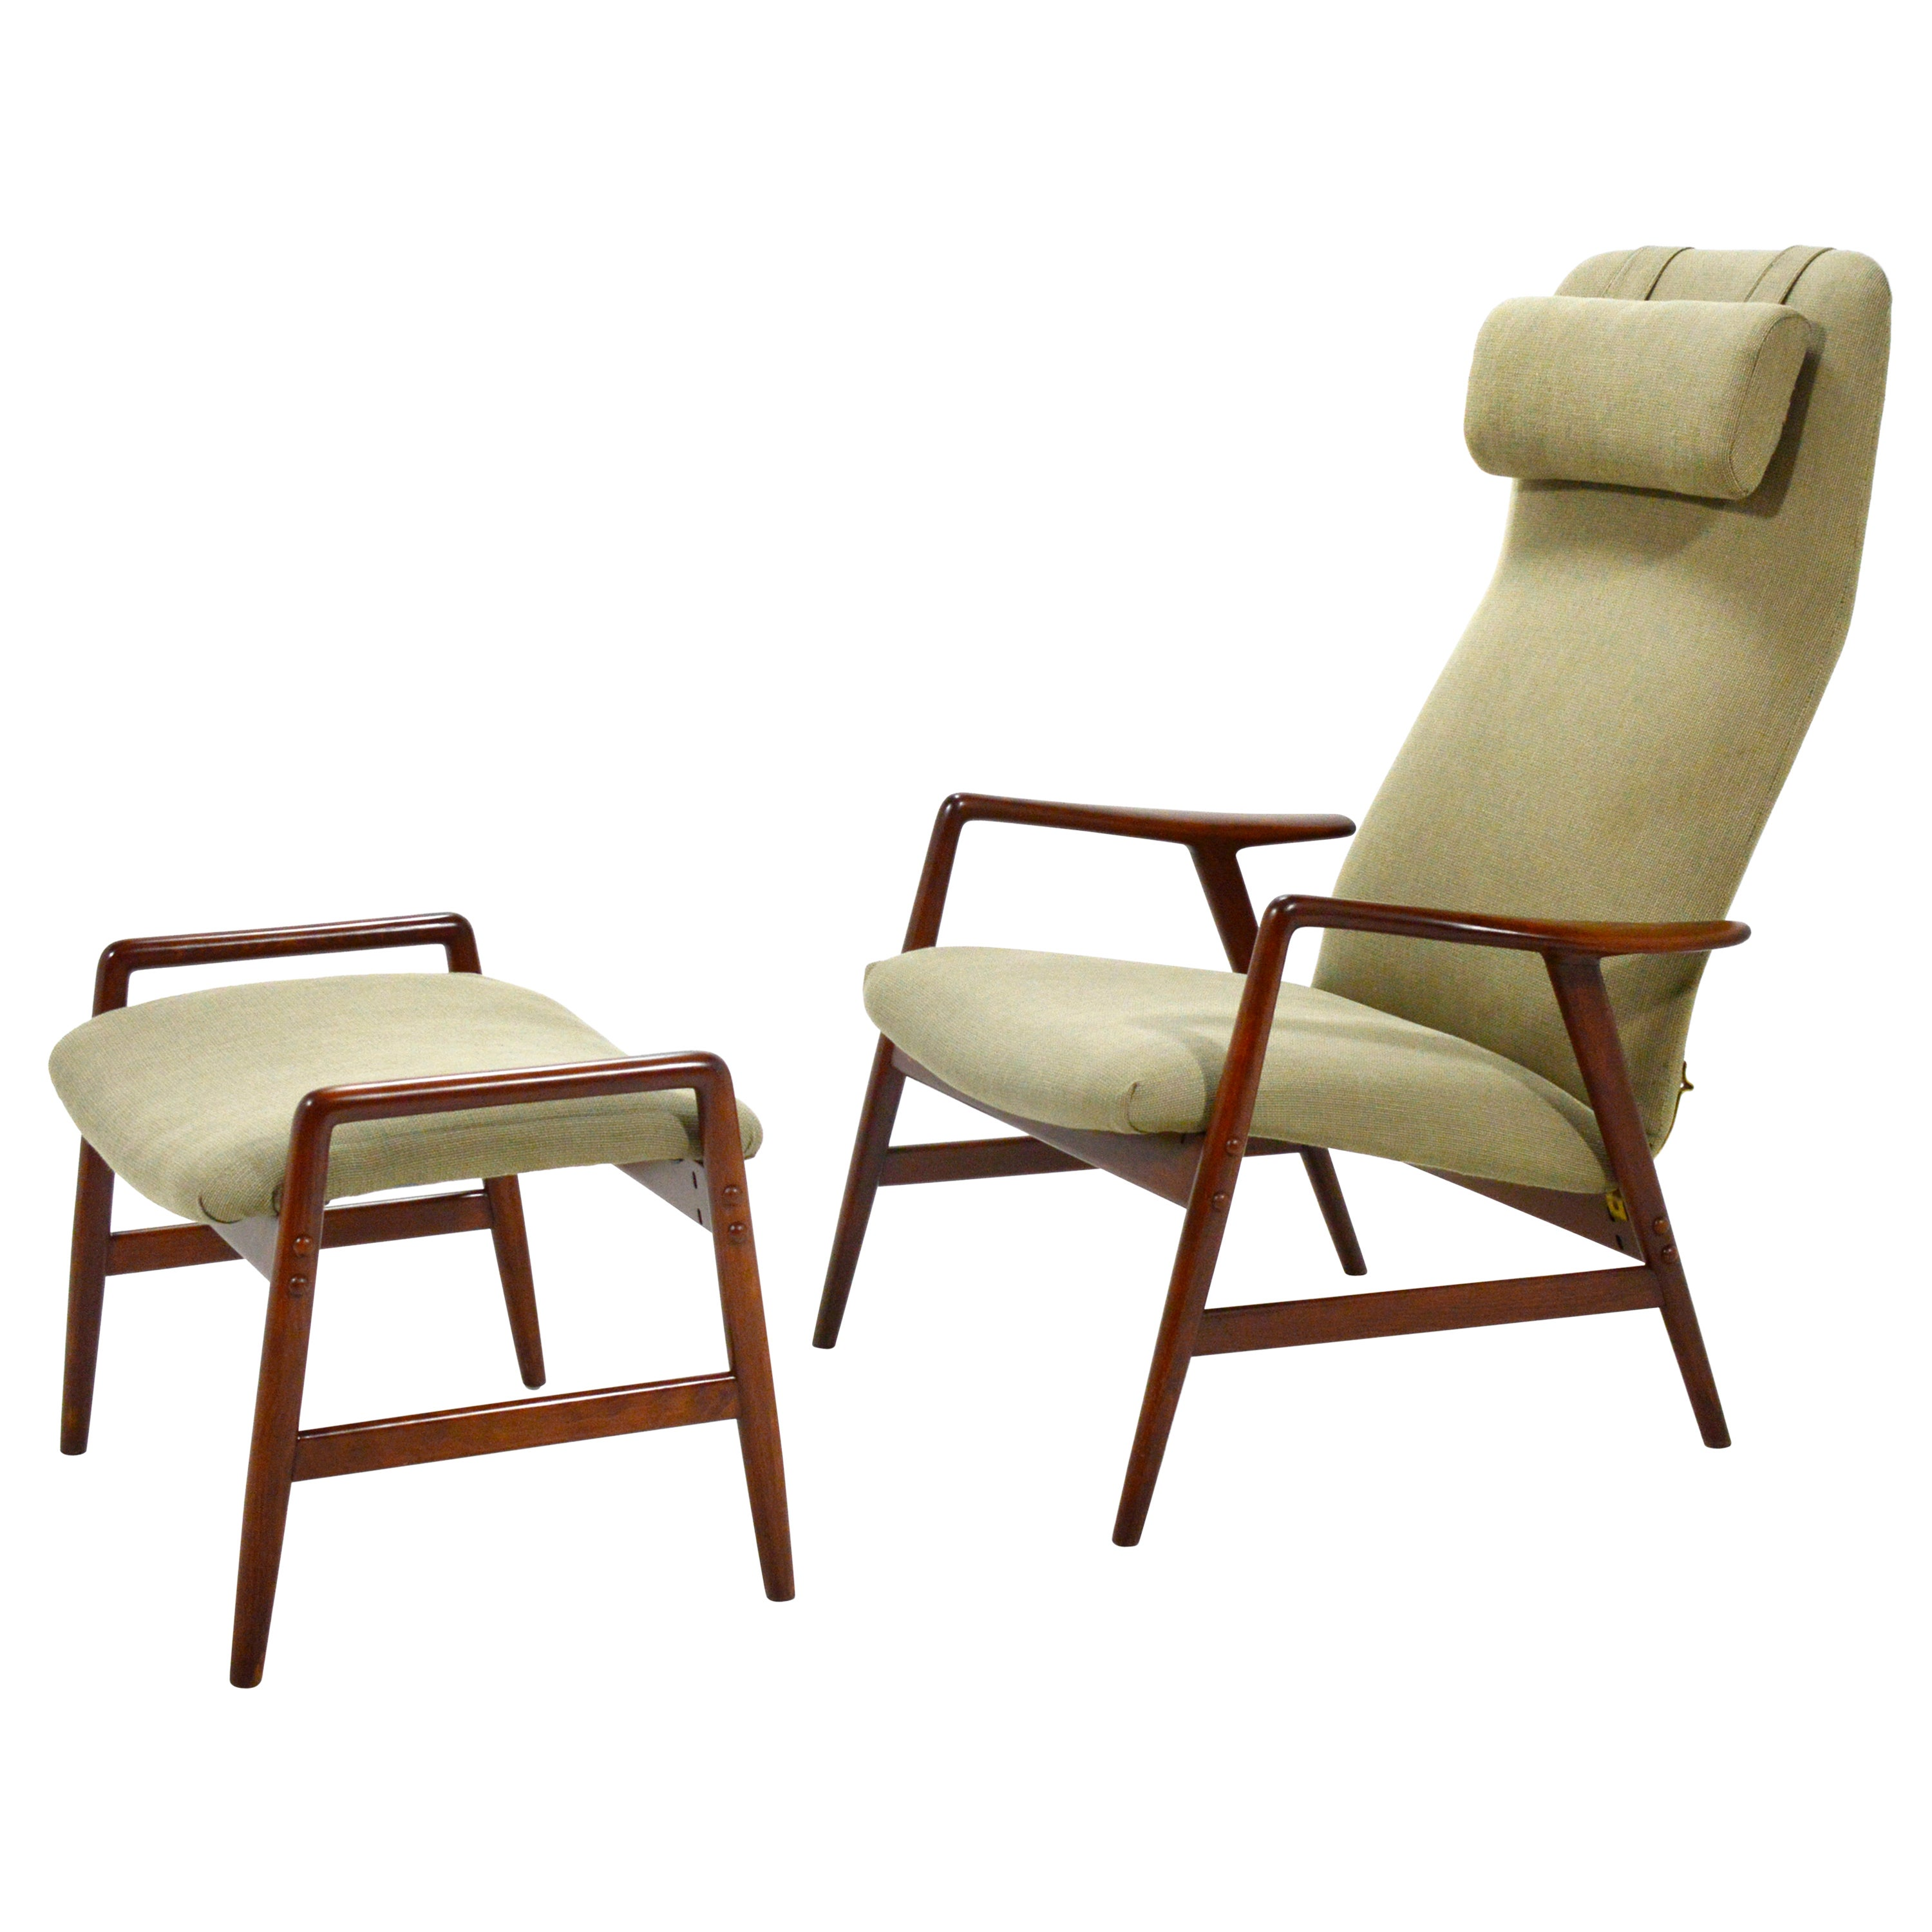 Alf Svensson Kontour Reclining Lounge Chair and Ottoman